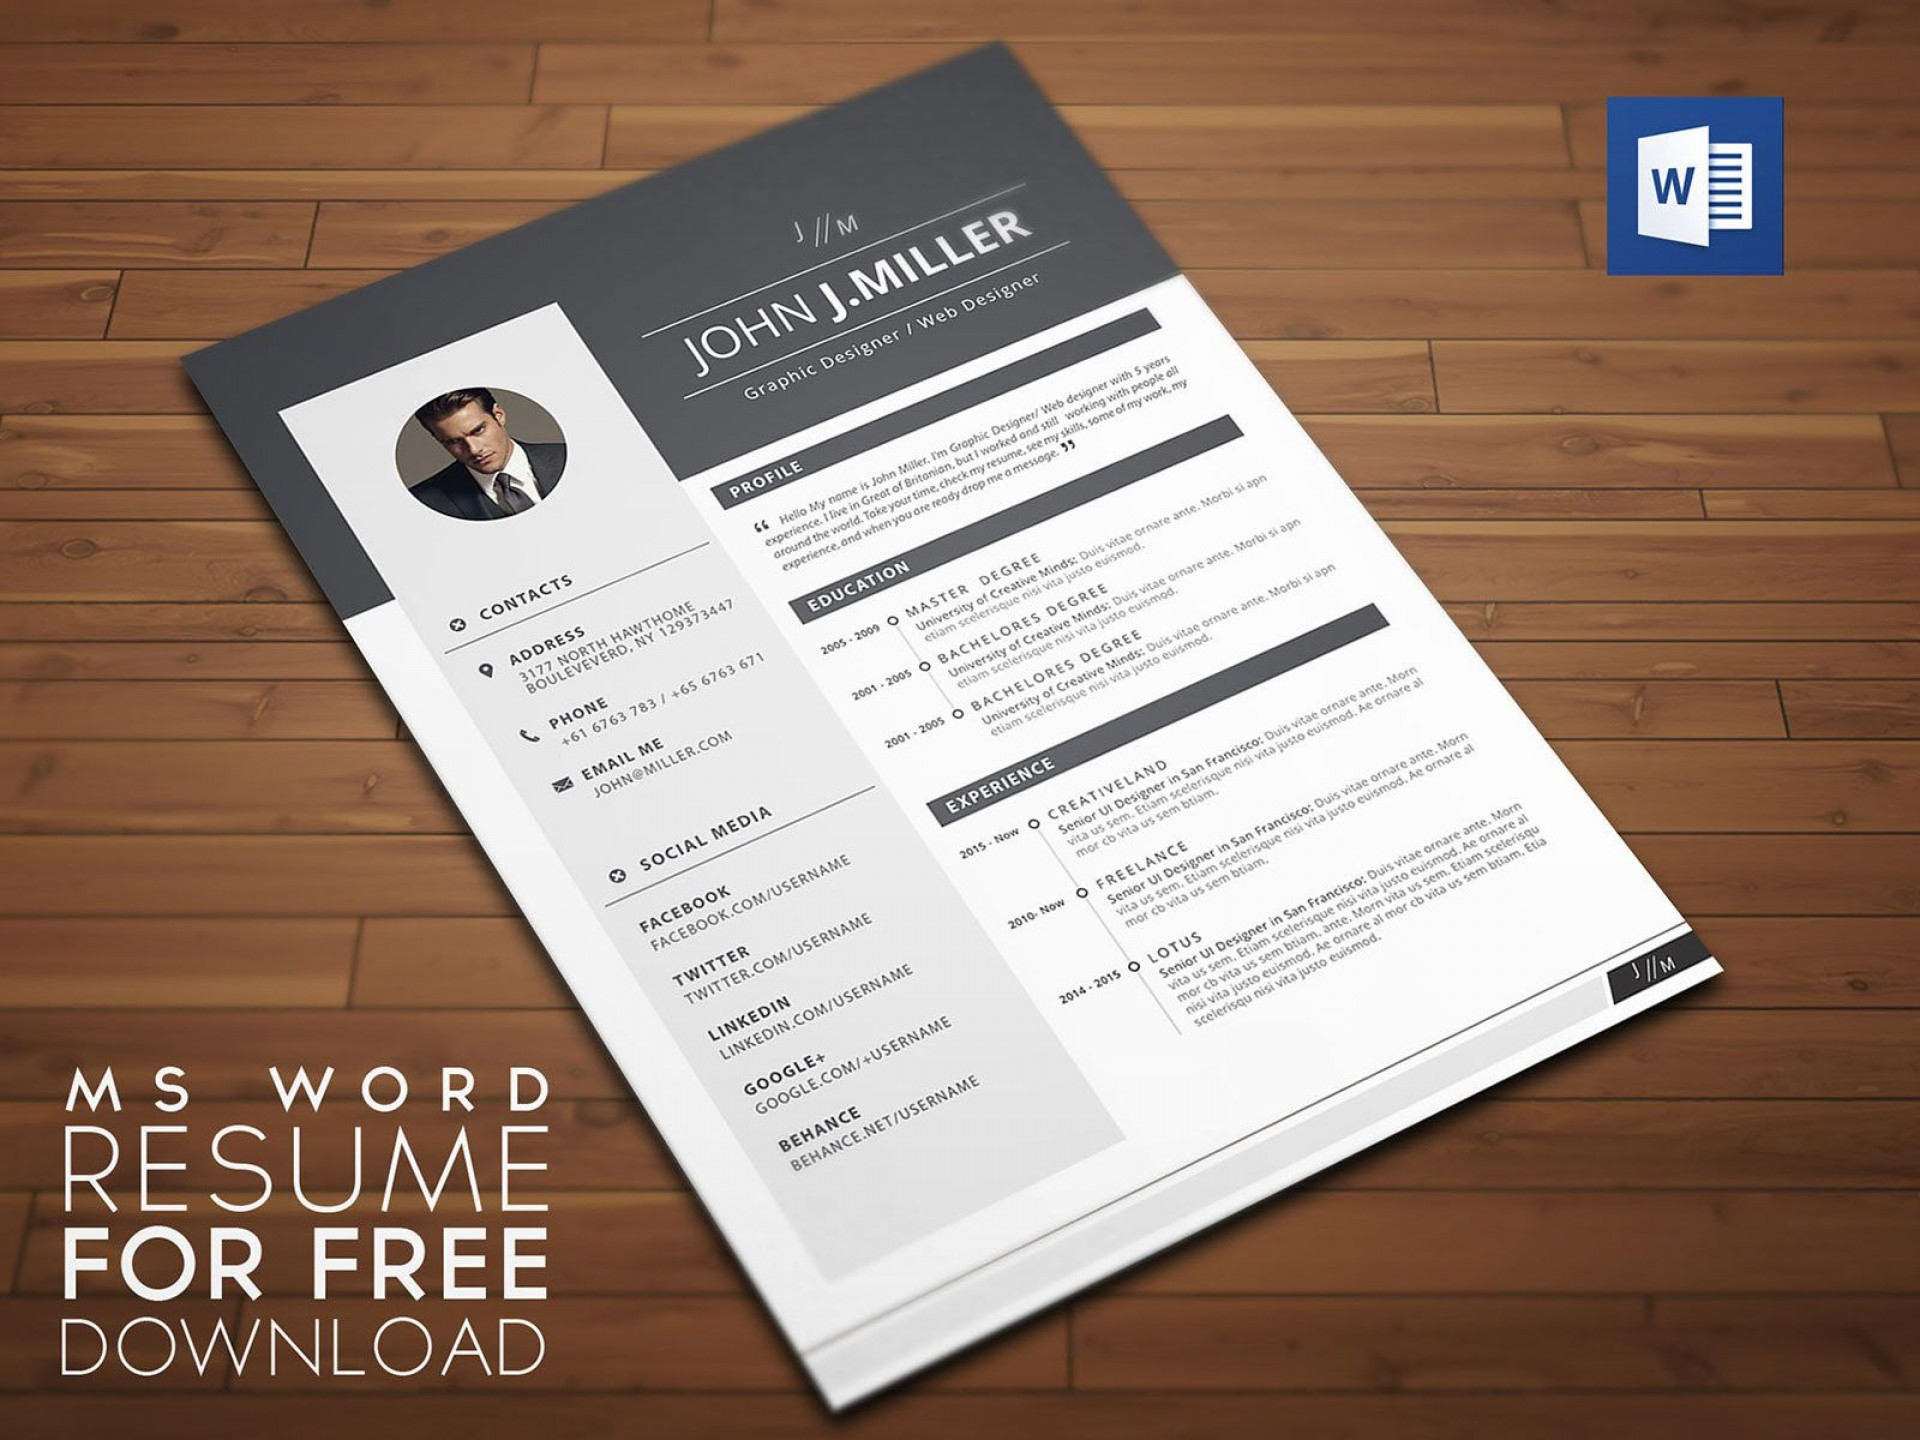 005 Unique Resume Template Download Word Picture  Cv Free 2018 2007 Document For Fresher1920